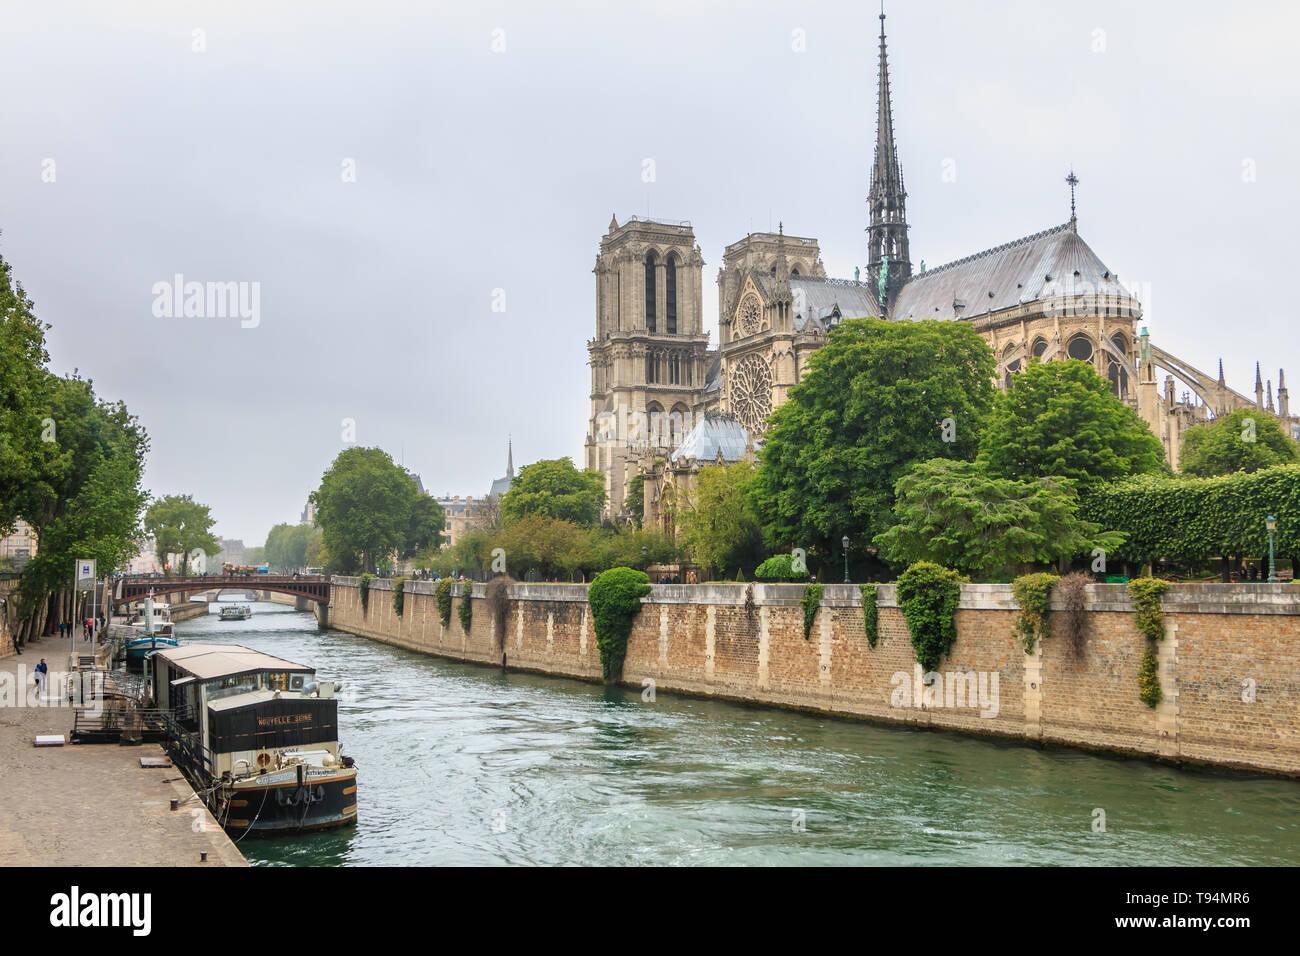 Paris, France - May 8, 2017 - Side view of Notre Dame Cathedral on the Seine with barges on a spring day - Stock Image